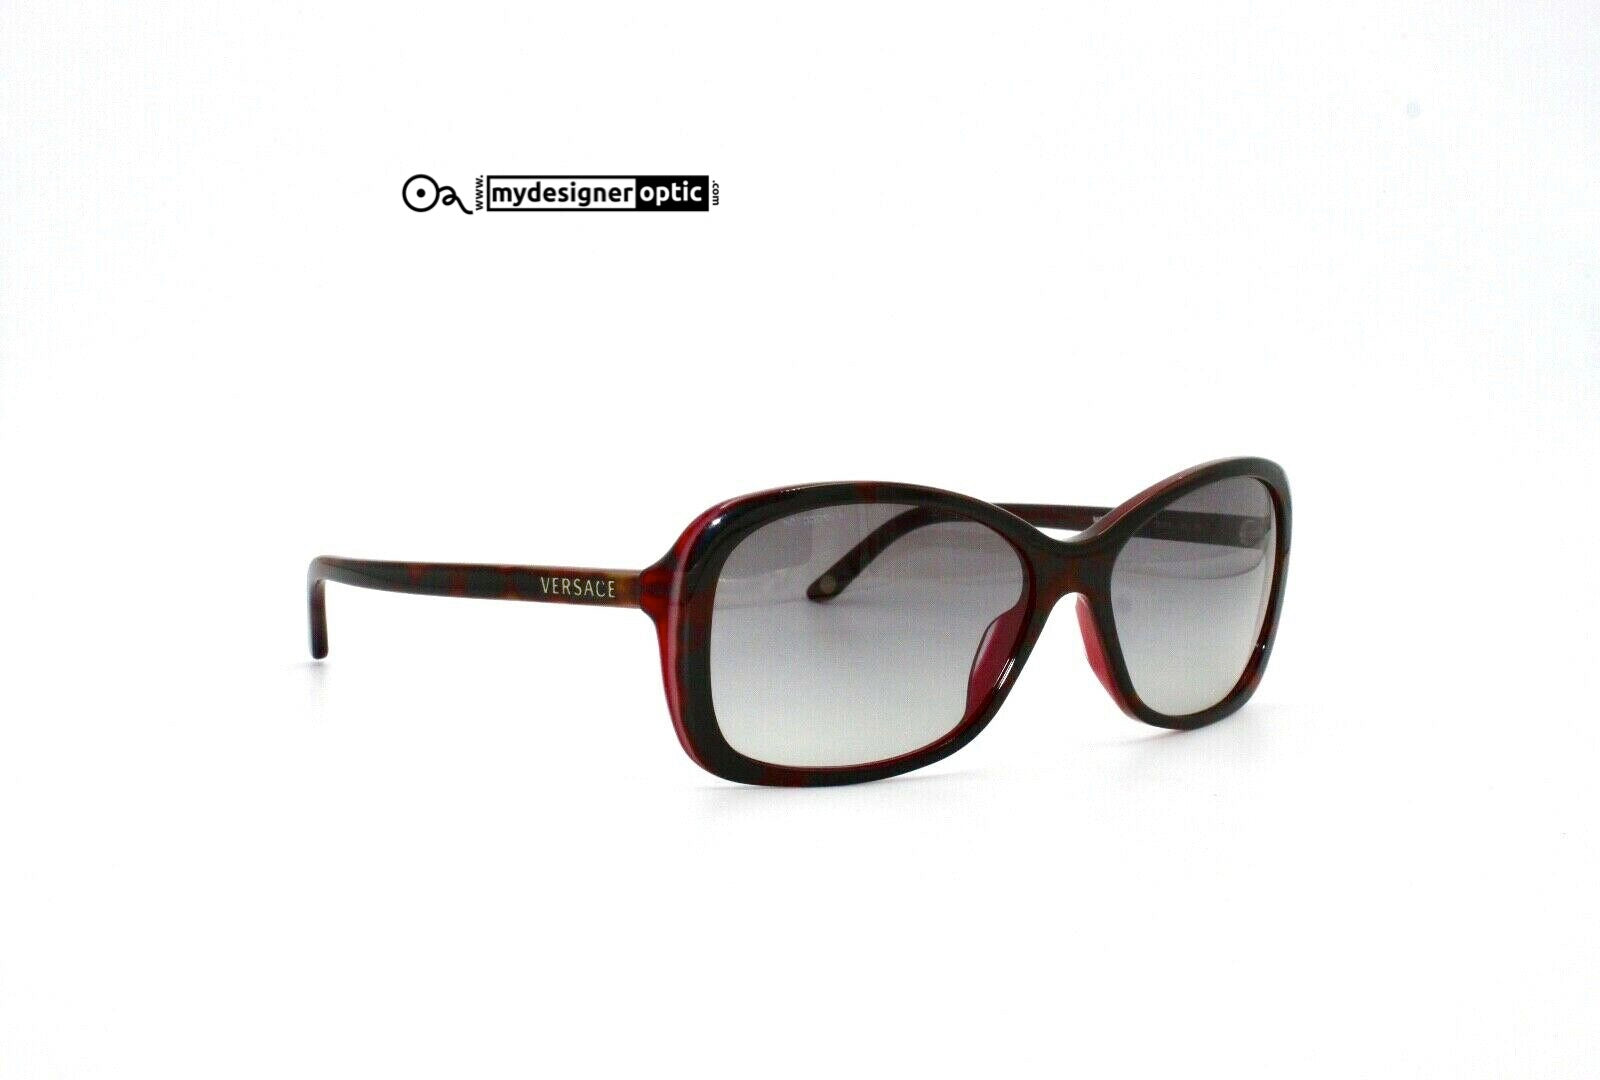 Versace Sunglasses MOD.4189 886/11 58-16 135 2N Made in Italy - Mydesigneroptic